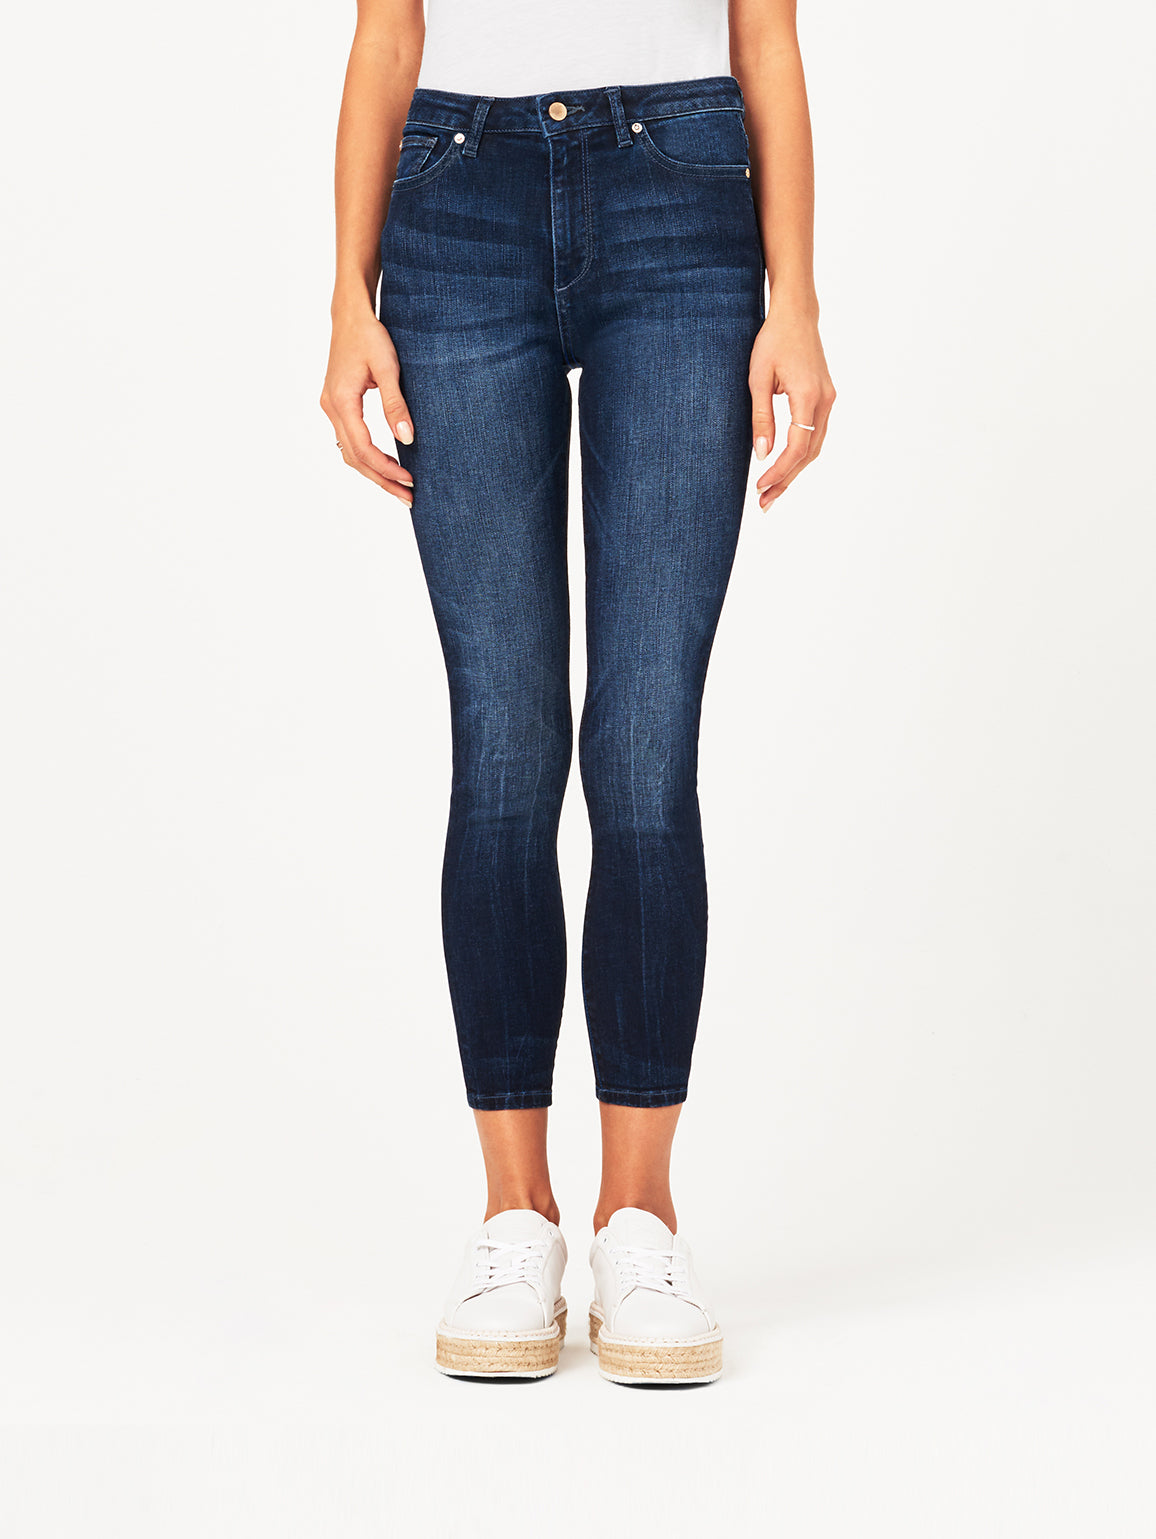 Image of Chrissy Ultra High Rise Skinny / Daytona